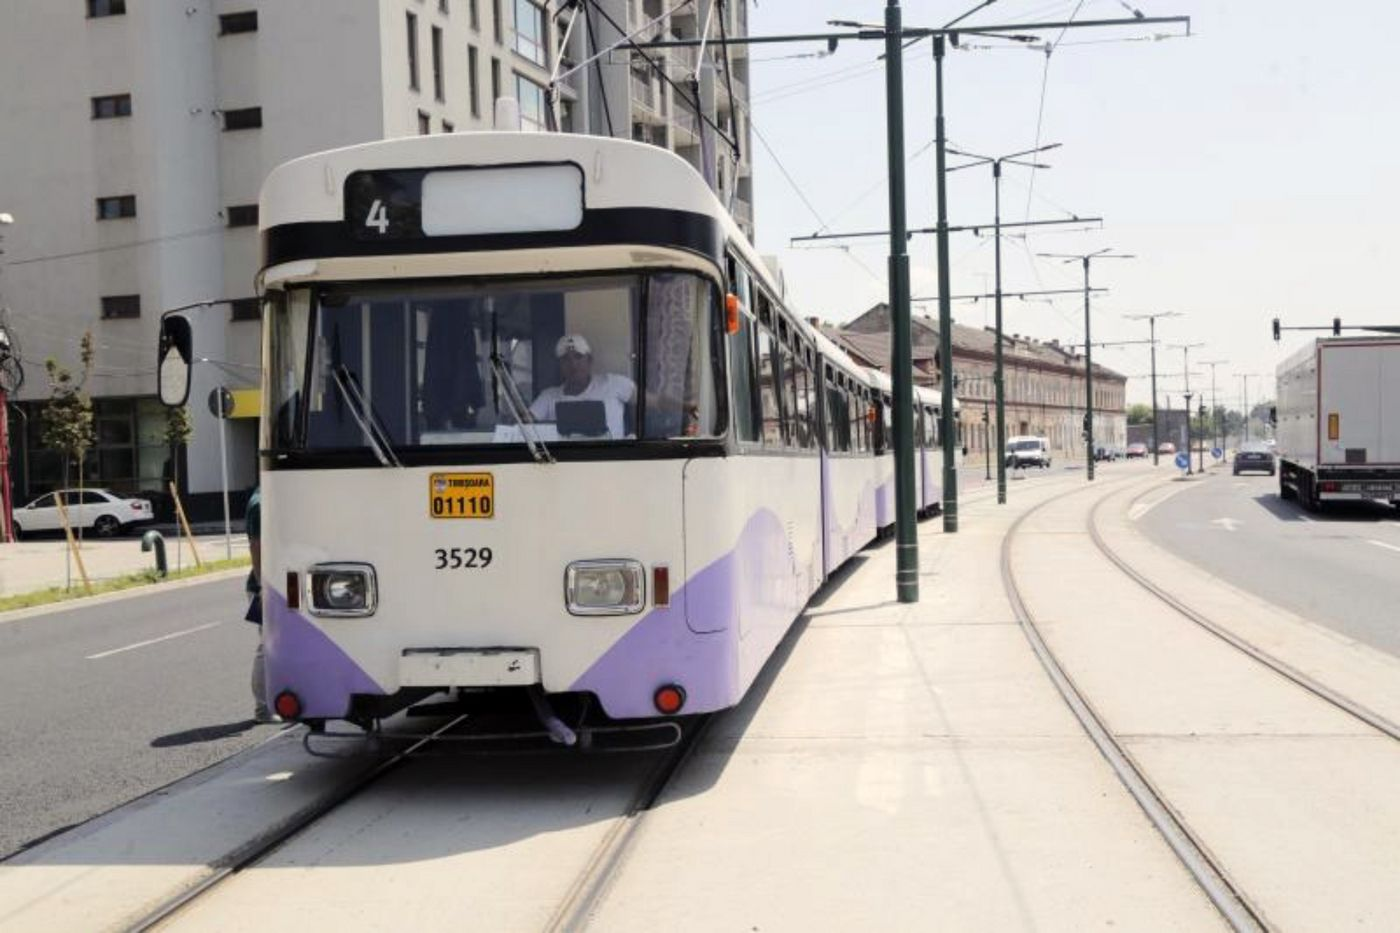 Photo: white and violet tramway driving on the new tracks; on the right, electricity poles and tracks; on the far right, a truck and cars on the street; an apartment building in the background opposite